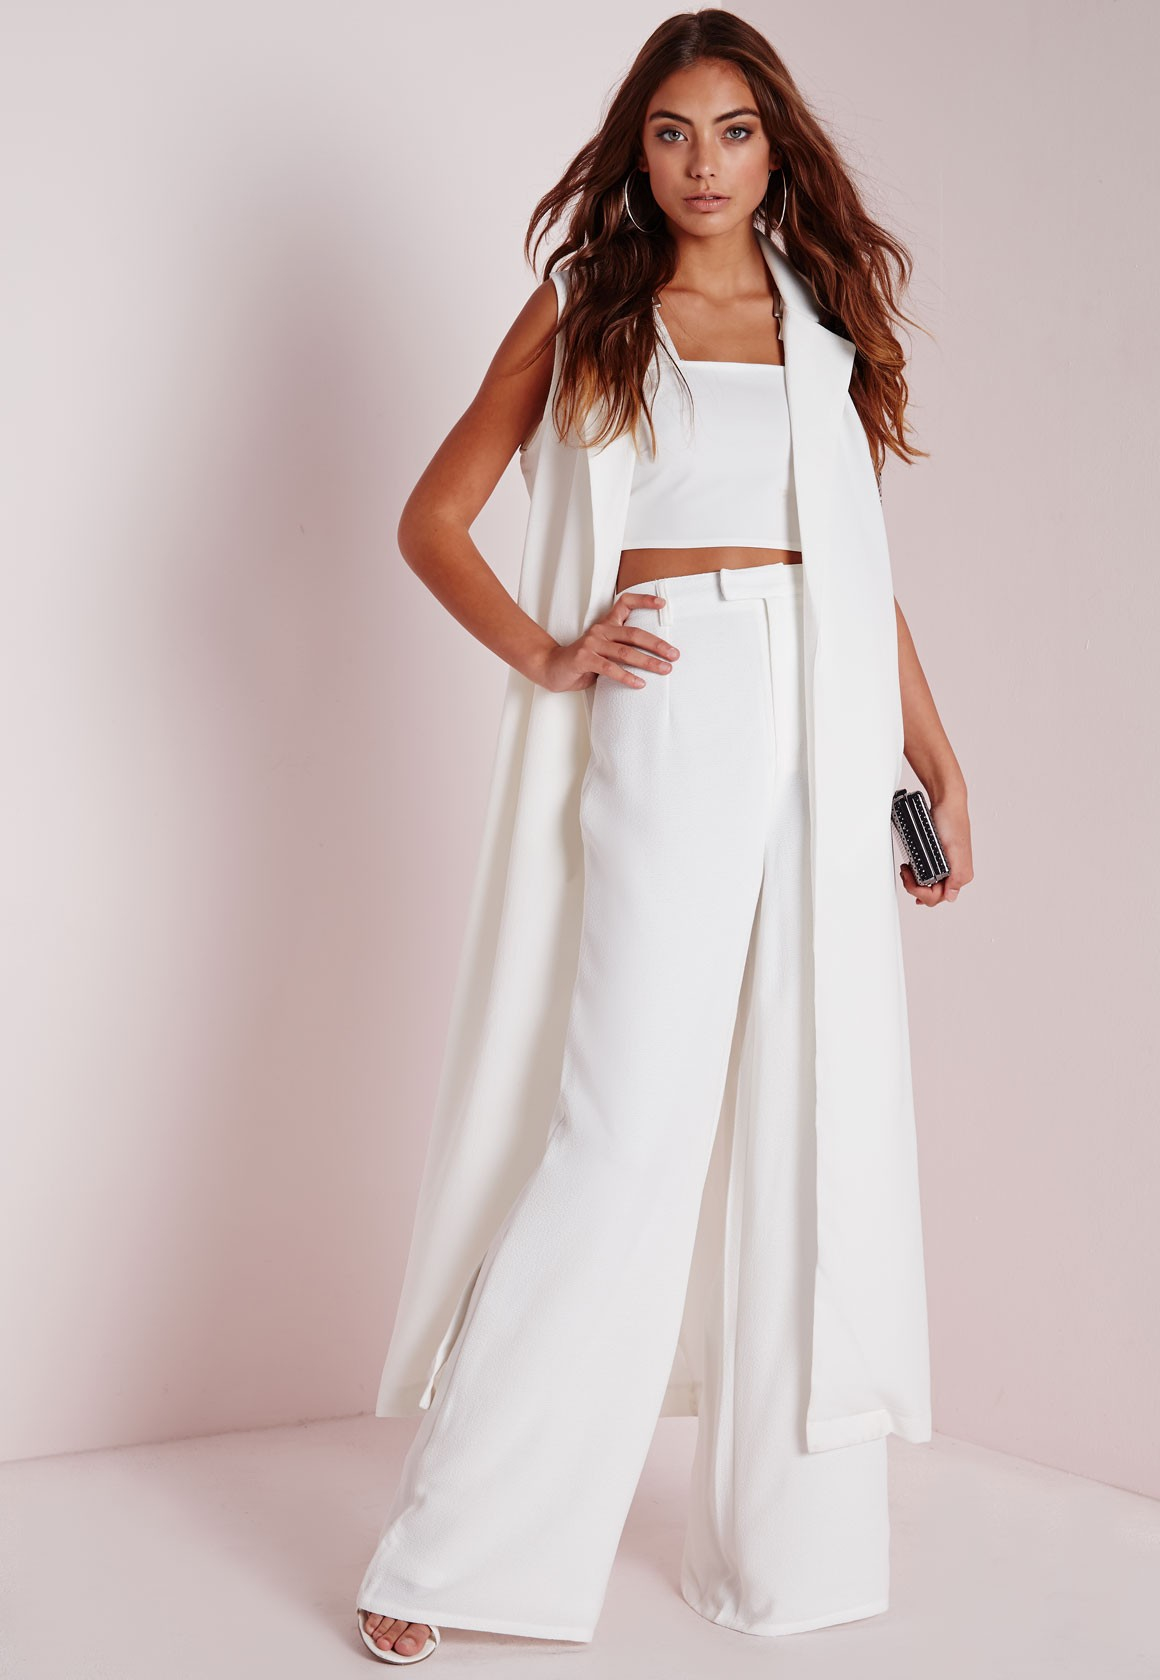 Lyst - Missguided Tall Premium Crepe Wide Leg Pants White in White dbb404ebbeb0